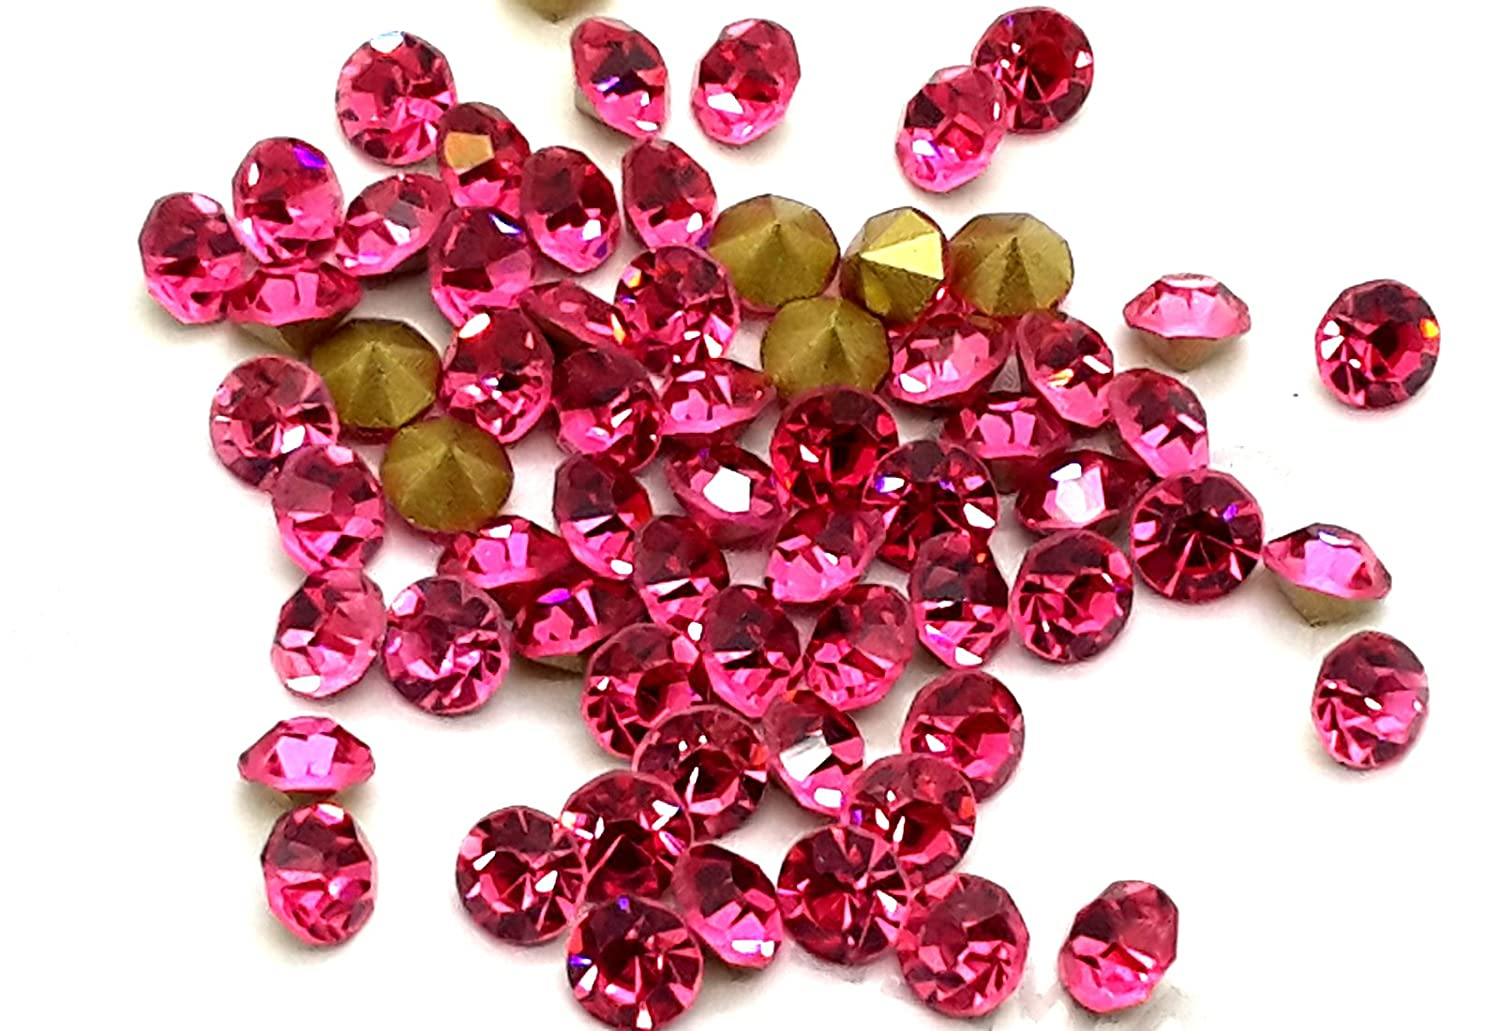 Foiled-back Crystals, EIMASS® Point-back Cut Diamond Chatons, Glass Crystals, Glass Rhinestones, Glass Gems, Pack of 100 Diamante (ss10 (2.8mm), Rose Hot Pink)